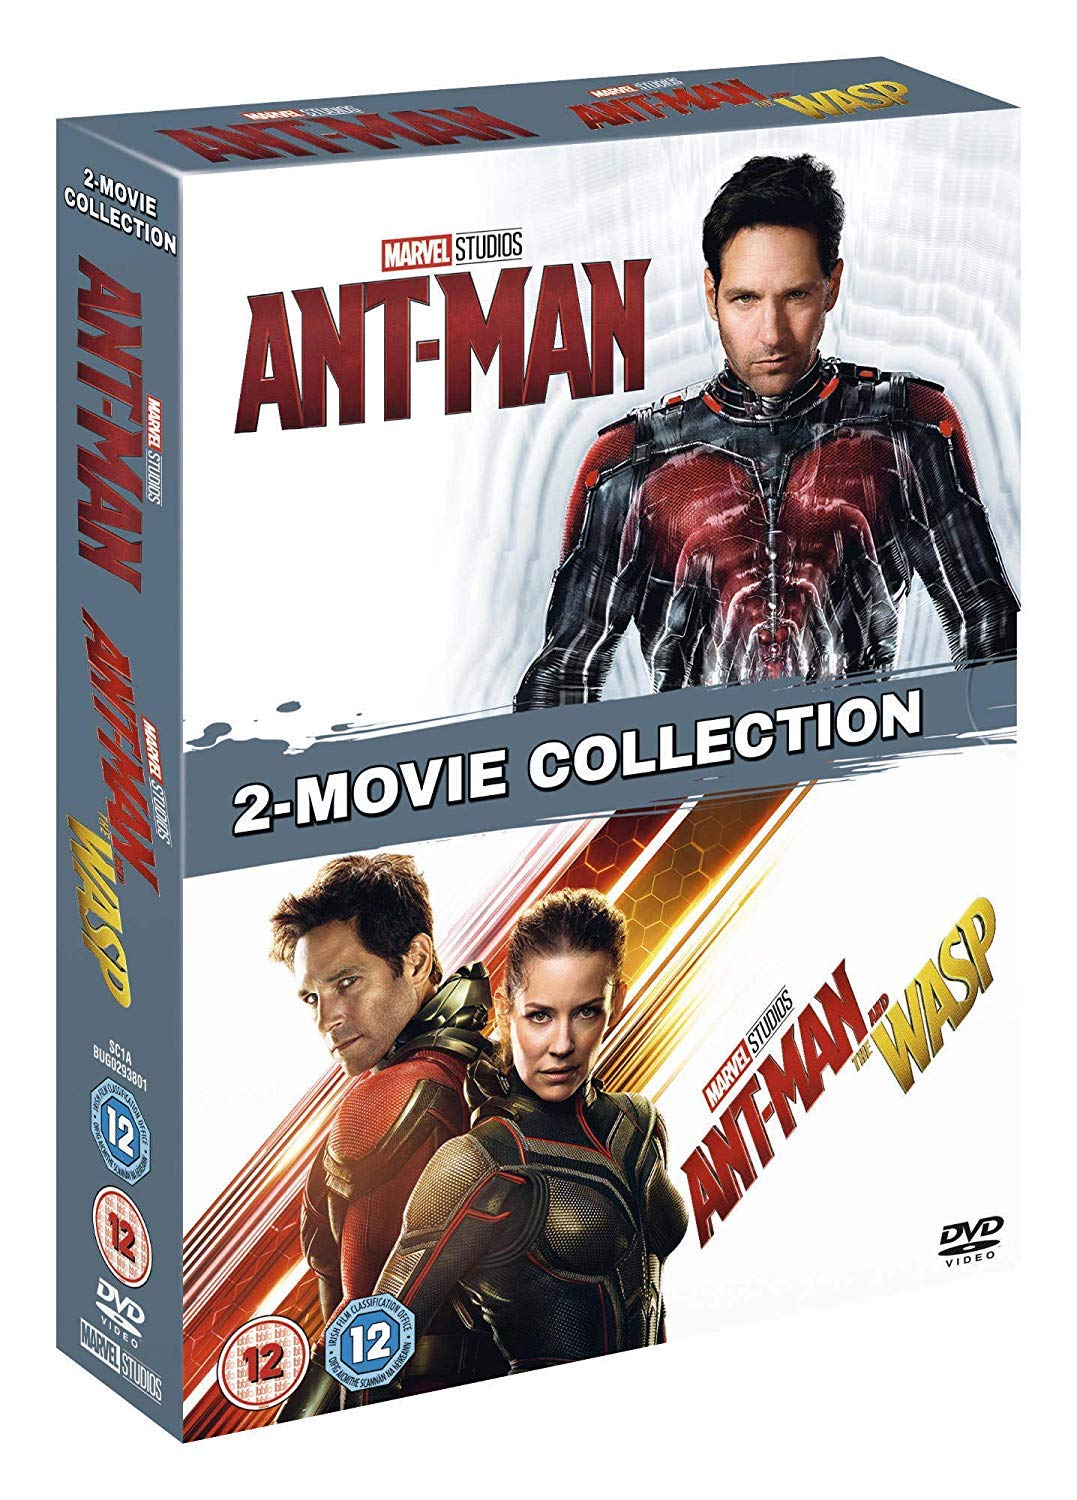 Ant-Man 1&2 Doublepack [Italia] [DVD]: Amazon.es: Cine y Series TV